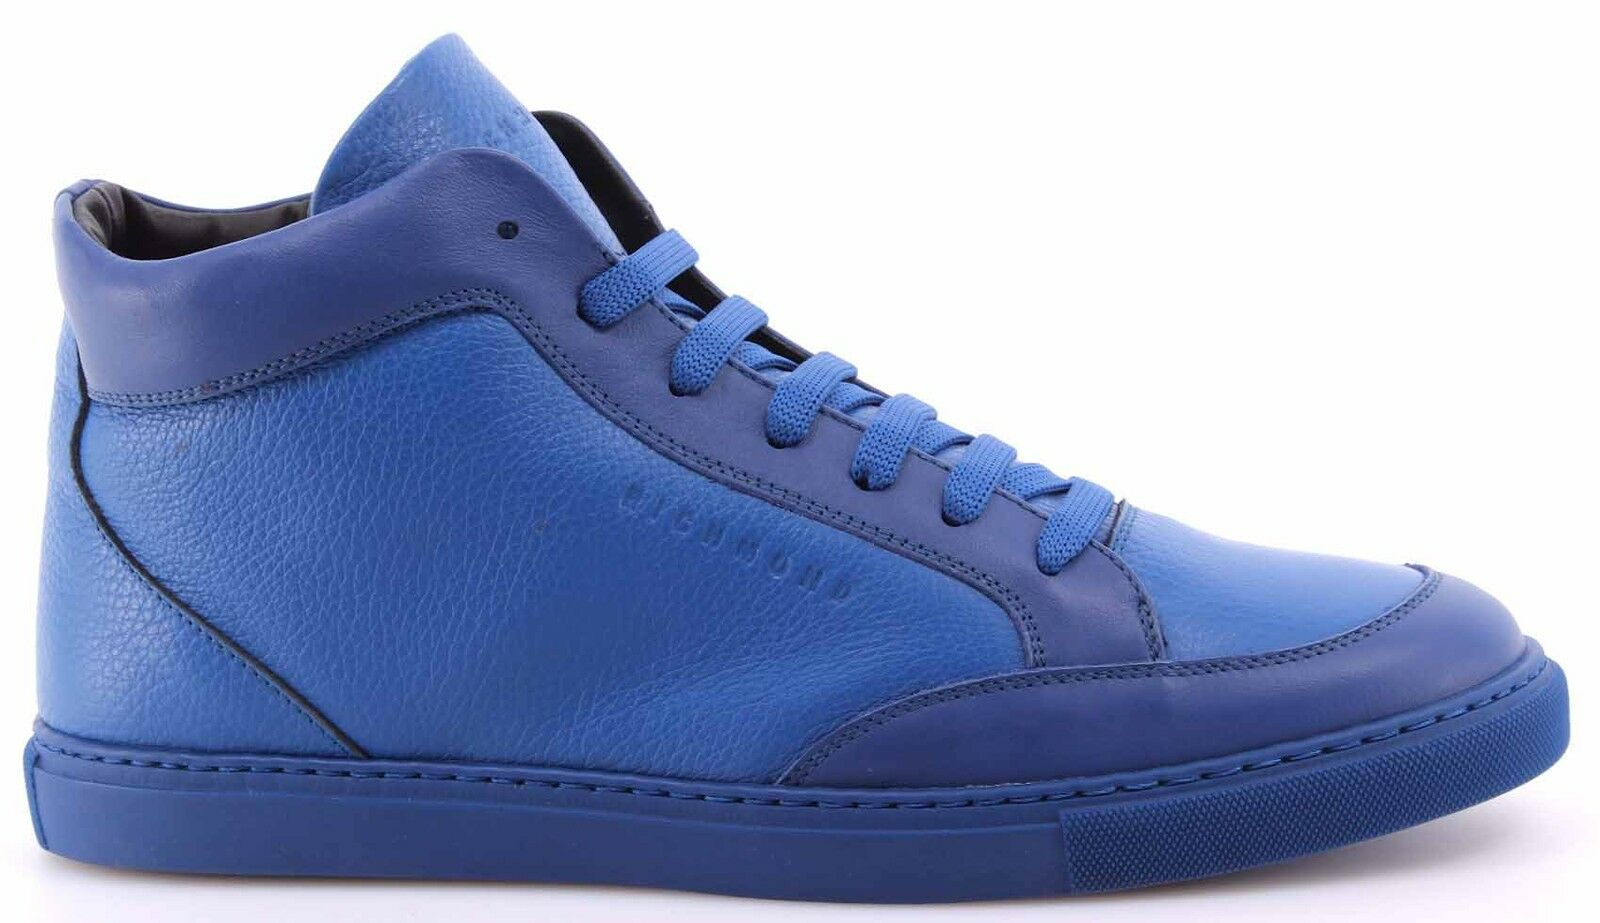 Herren High Top Sneakers Schuhe Schuhe Schuhe RICHMOND 6627 Alce Bluette Leder Blau Neu 243acb